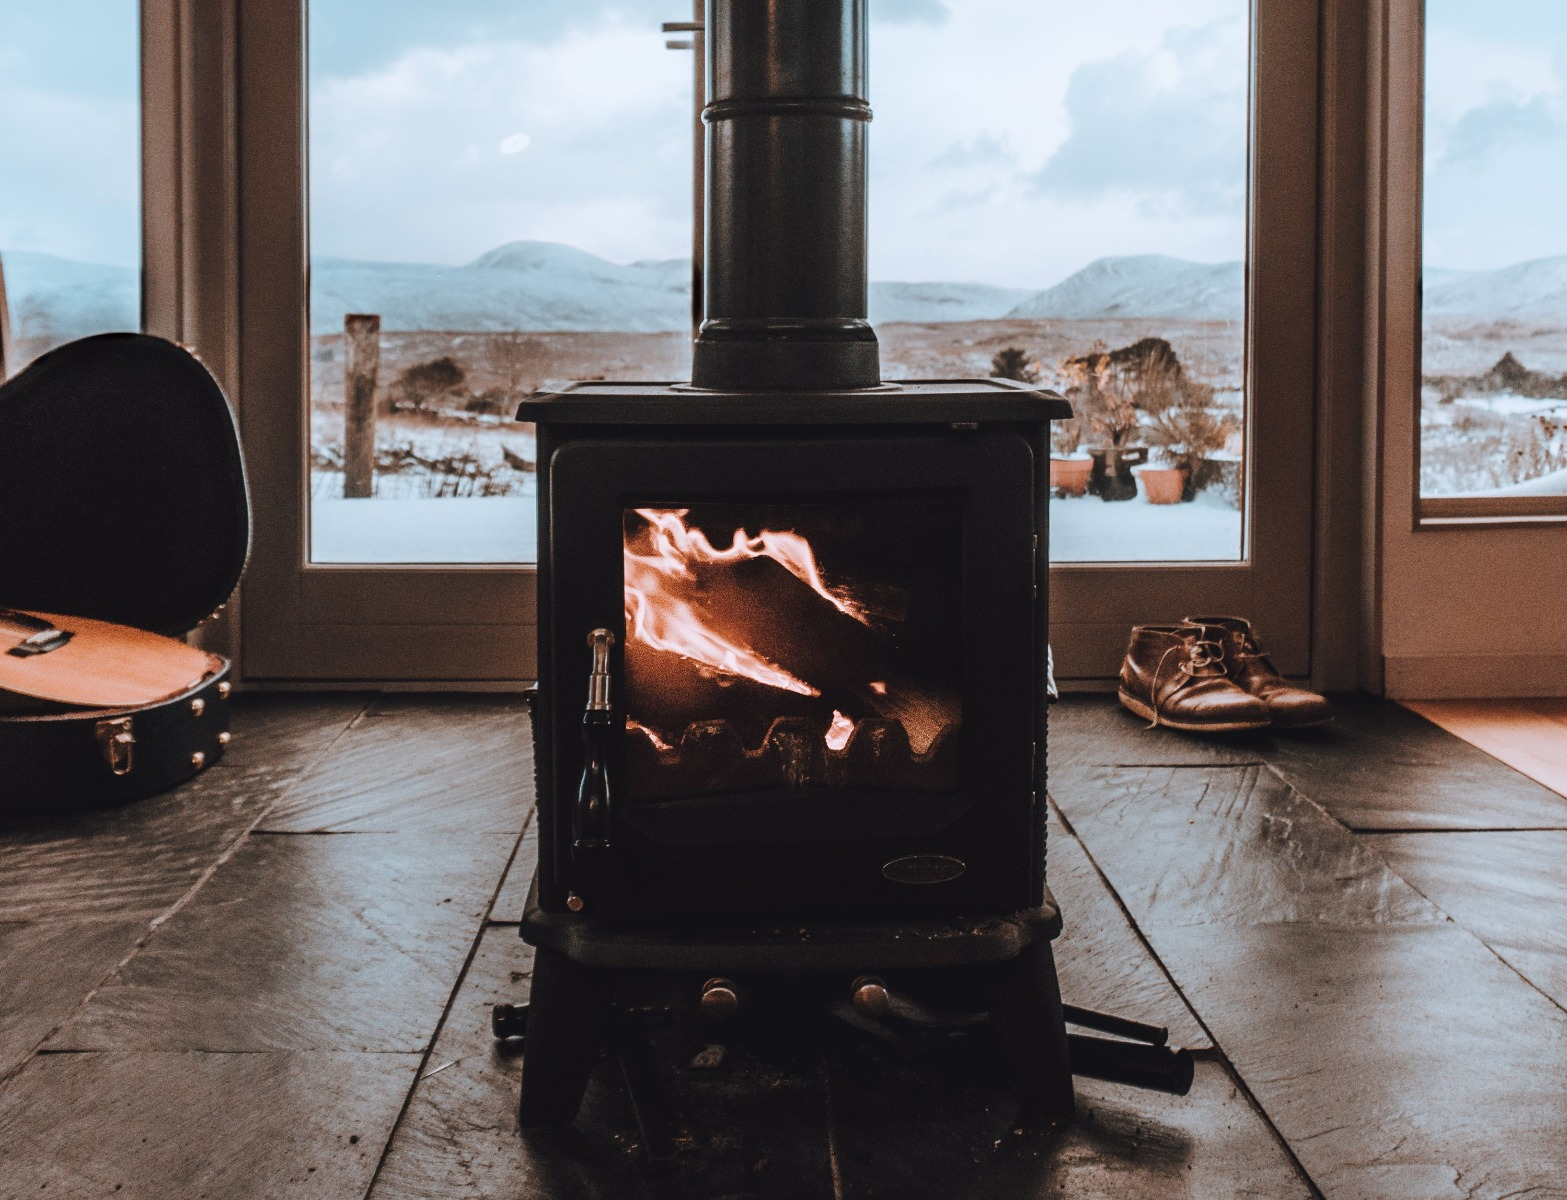 Log Burners are a stylish way to heat your cabin through the winter